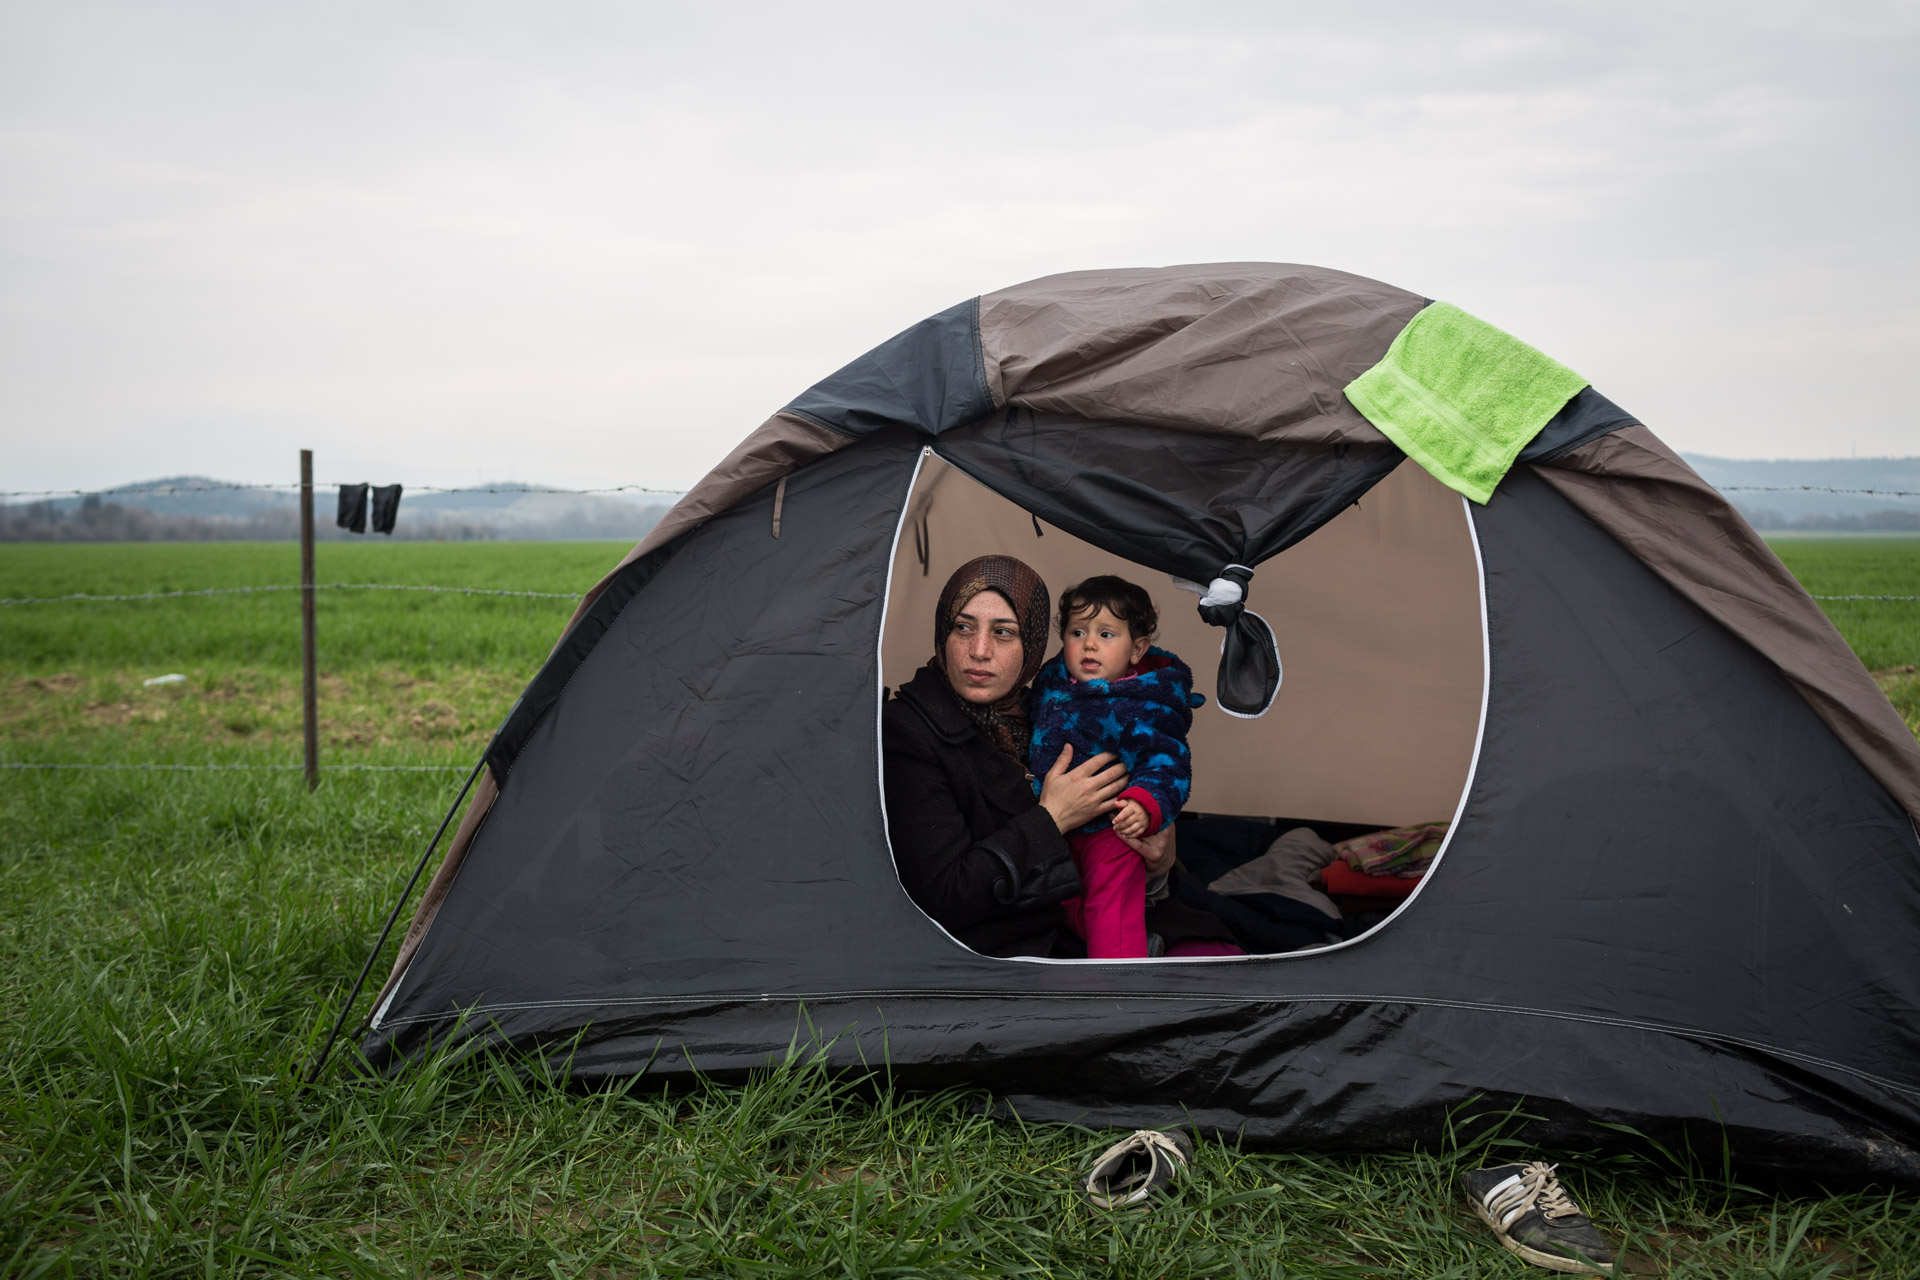 Khulud and Lilly in the tent after having breakfast. After she runs out of clean clothes, she stays mostly in the tent. Khulud feels ashamed because in Idomeni she doesn't have infrastructure to clean her clothes.